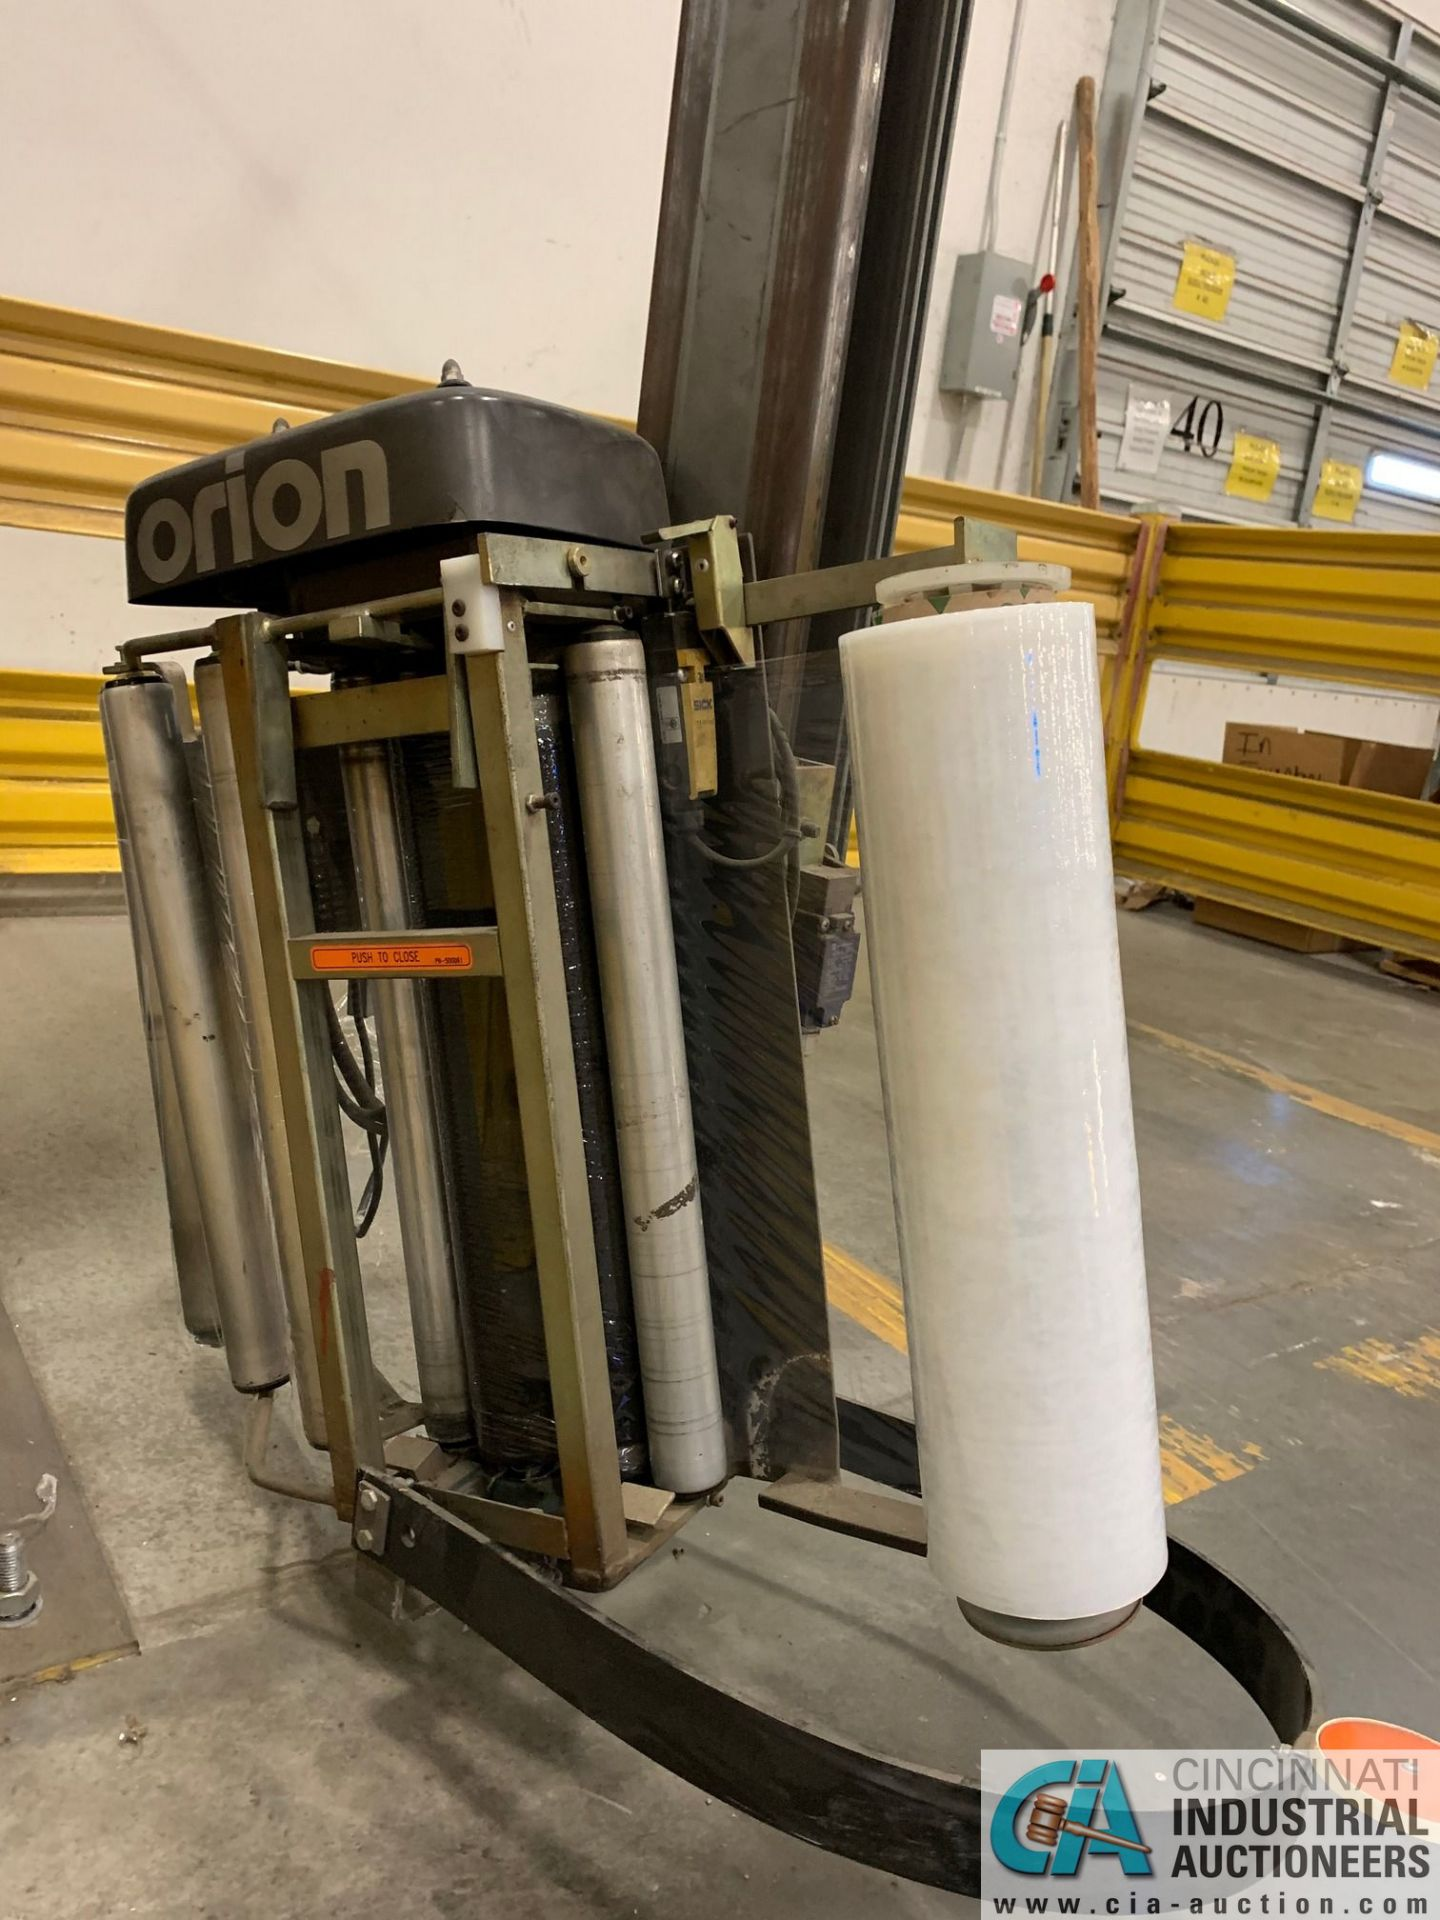 ORION M67/17IS SWING ARM STRETCH WRAPPING MACHINE; S/N 2006-0015989, 115-VOLTS, 15-AMPS, 60-HZ, 1- - Image 3 of 8